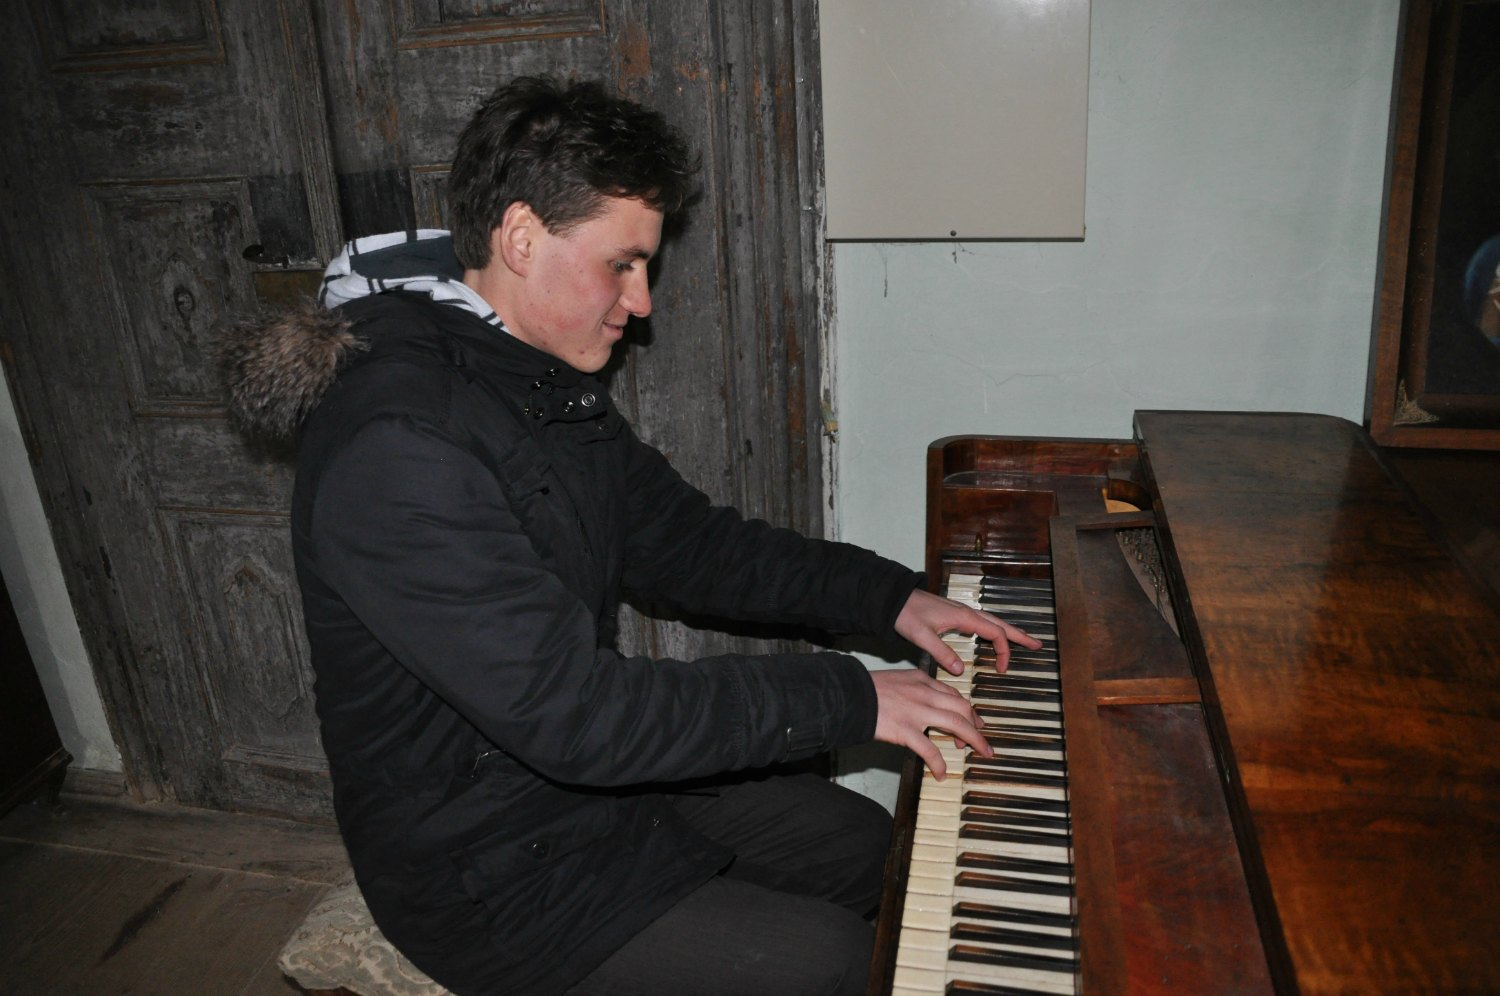 Vito playing a tune on an antique piano.